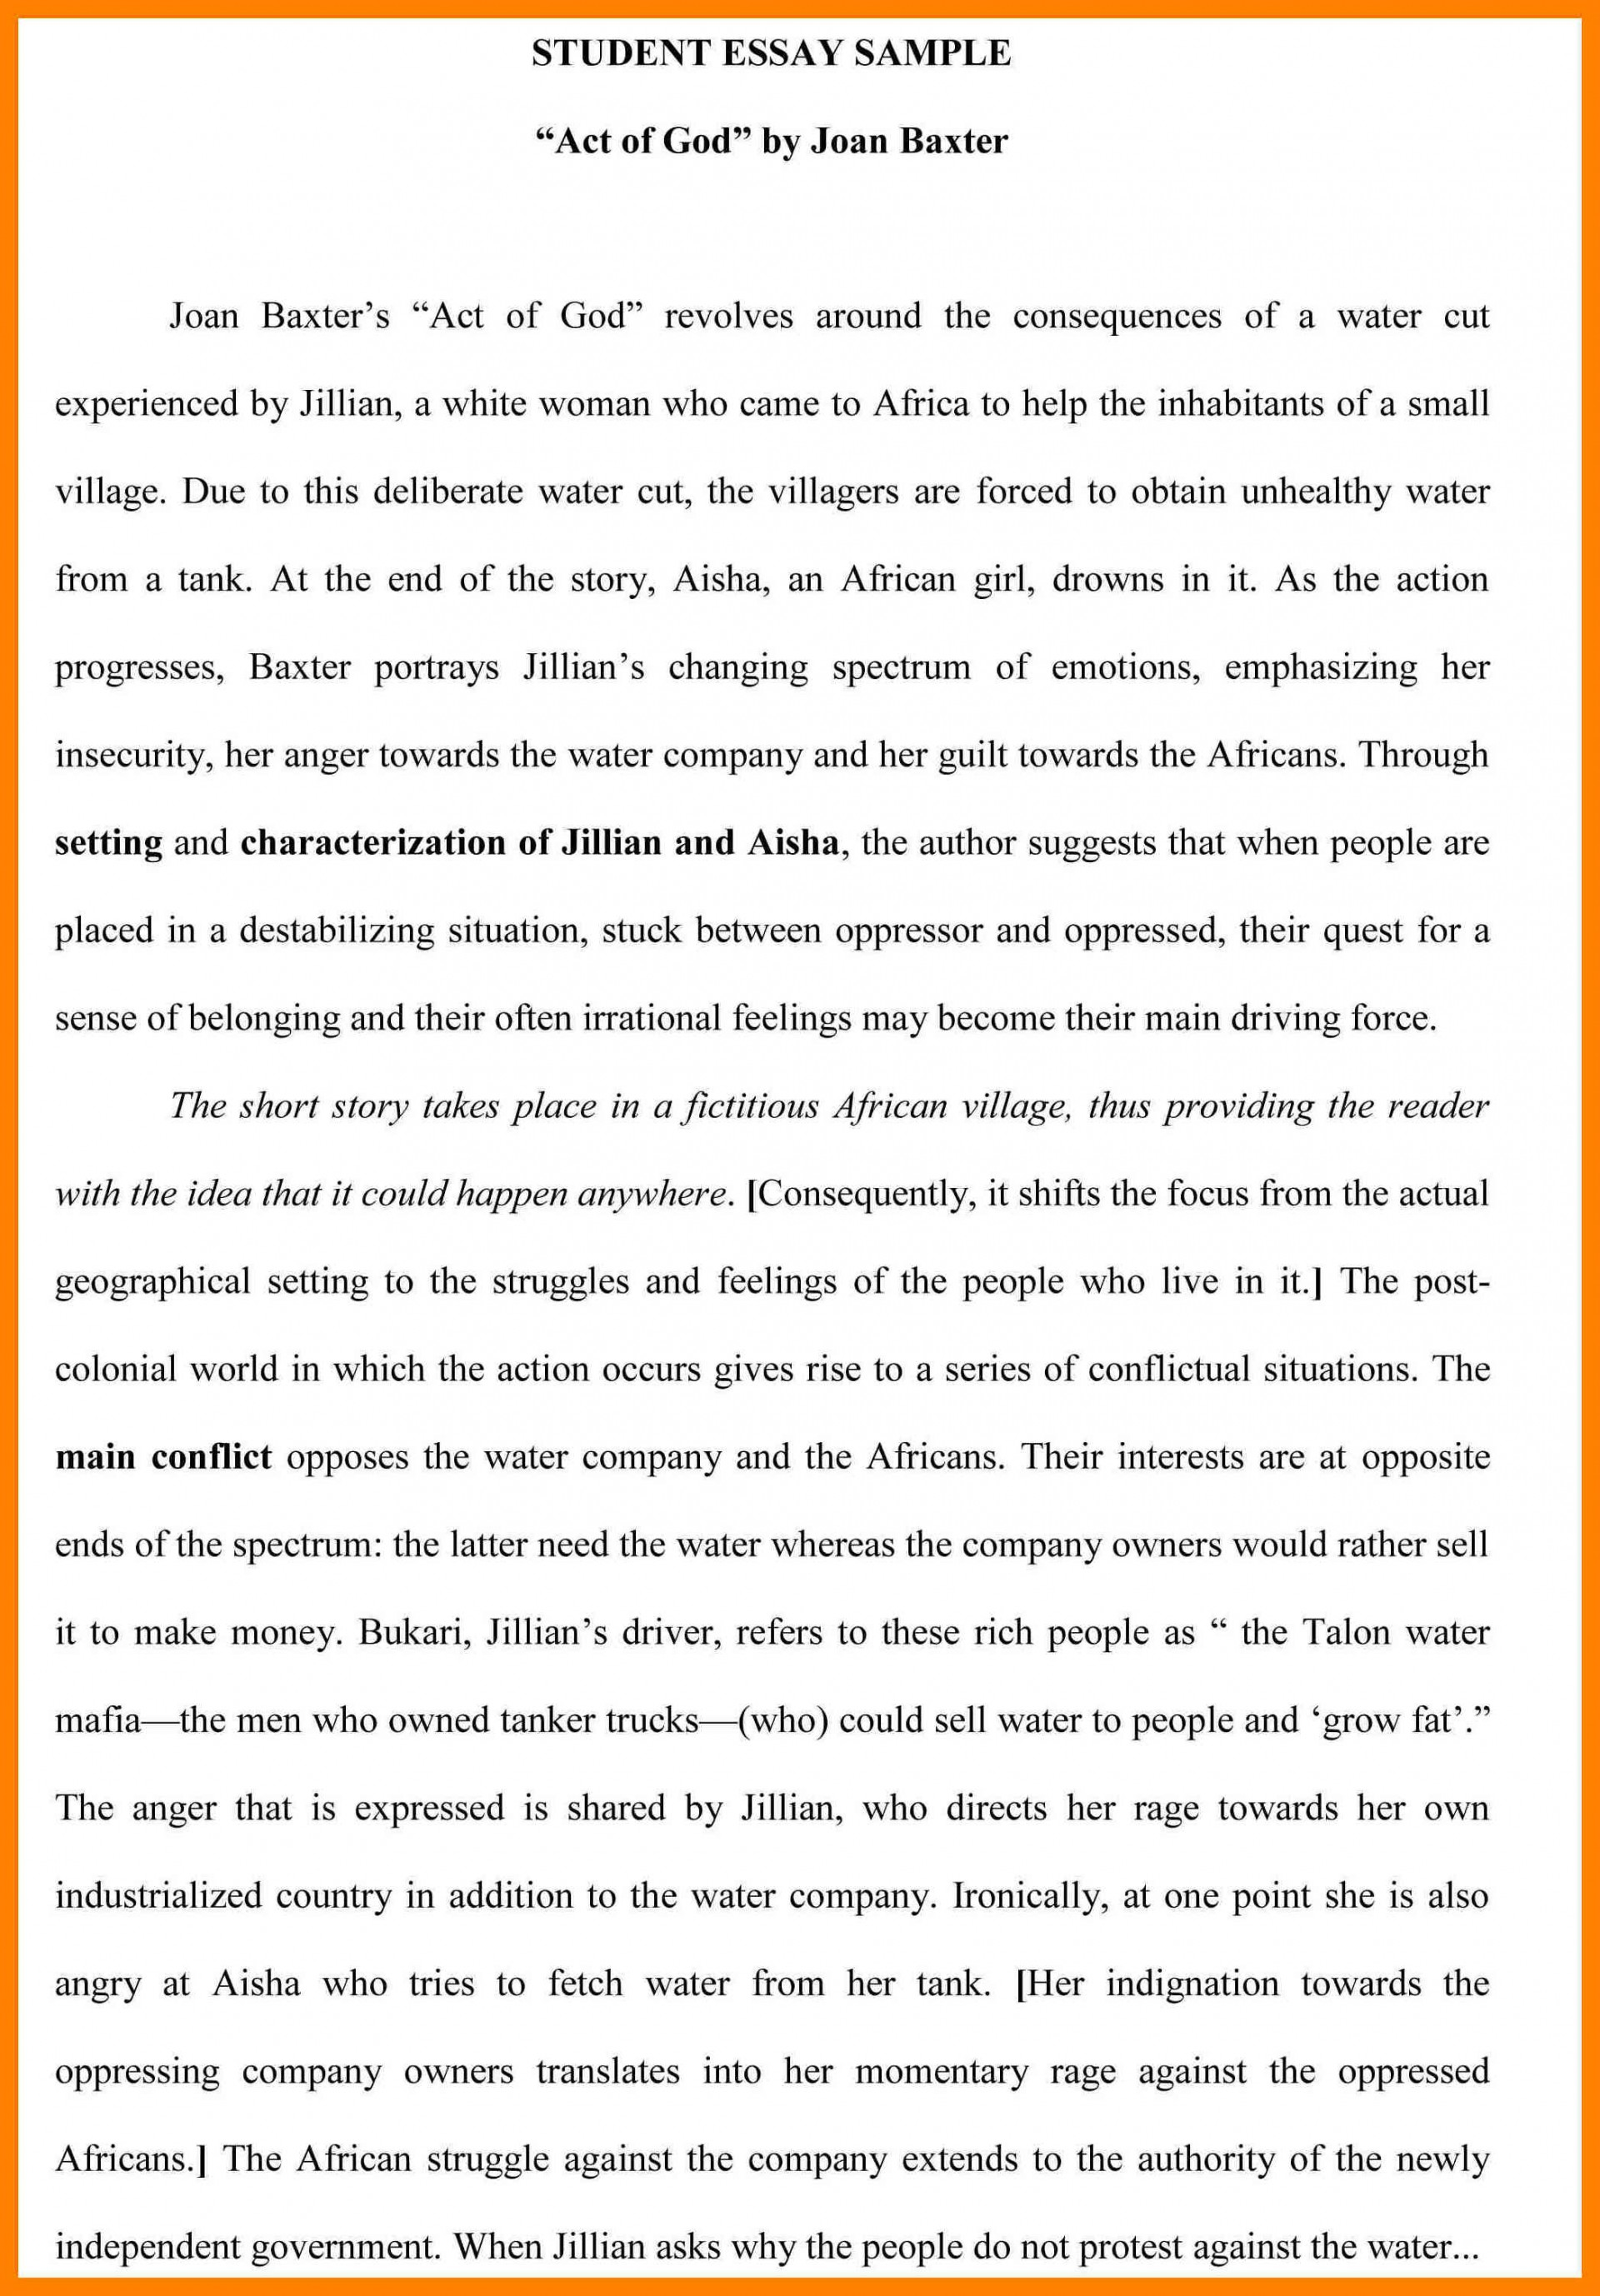 001 Sample Math Test Act Elmifermetures Com Ideas Collection Essay Awesome Of Livesto Essays Pdf New Topics Wonderful Writing 1920